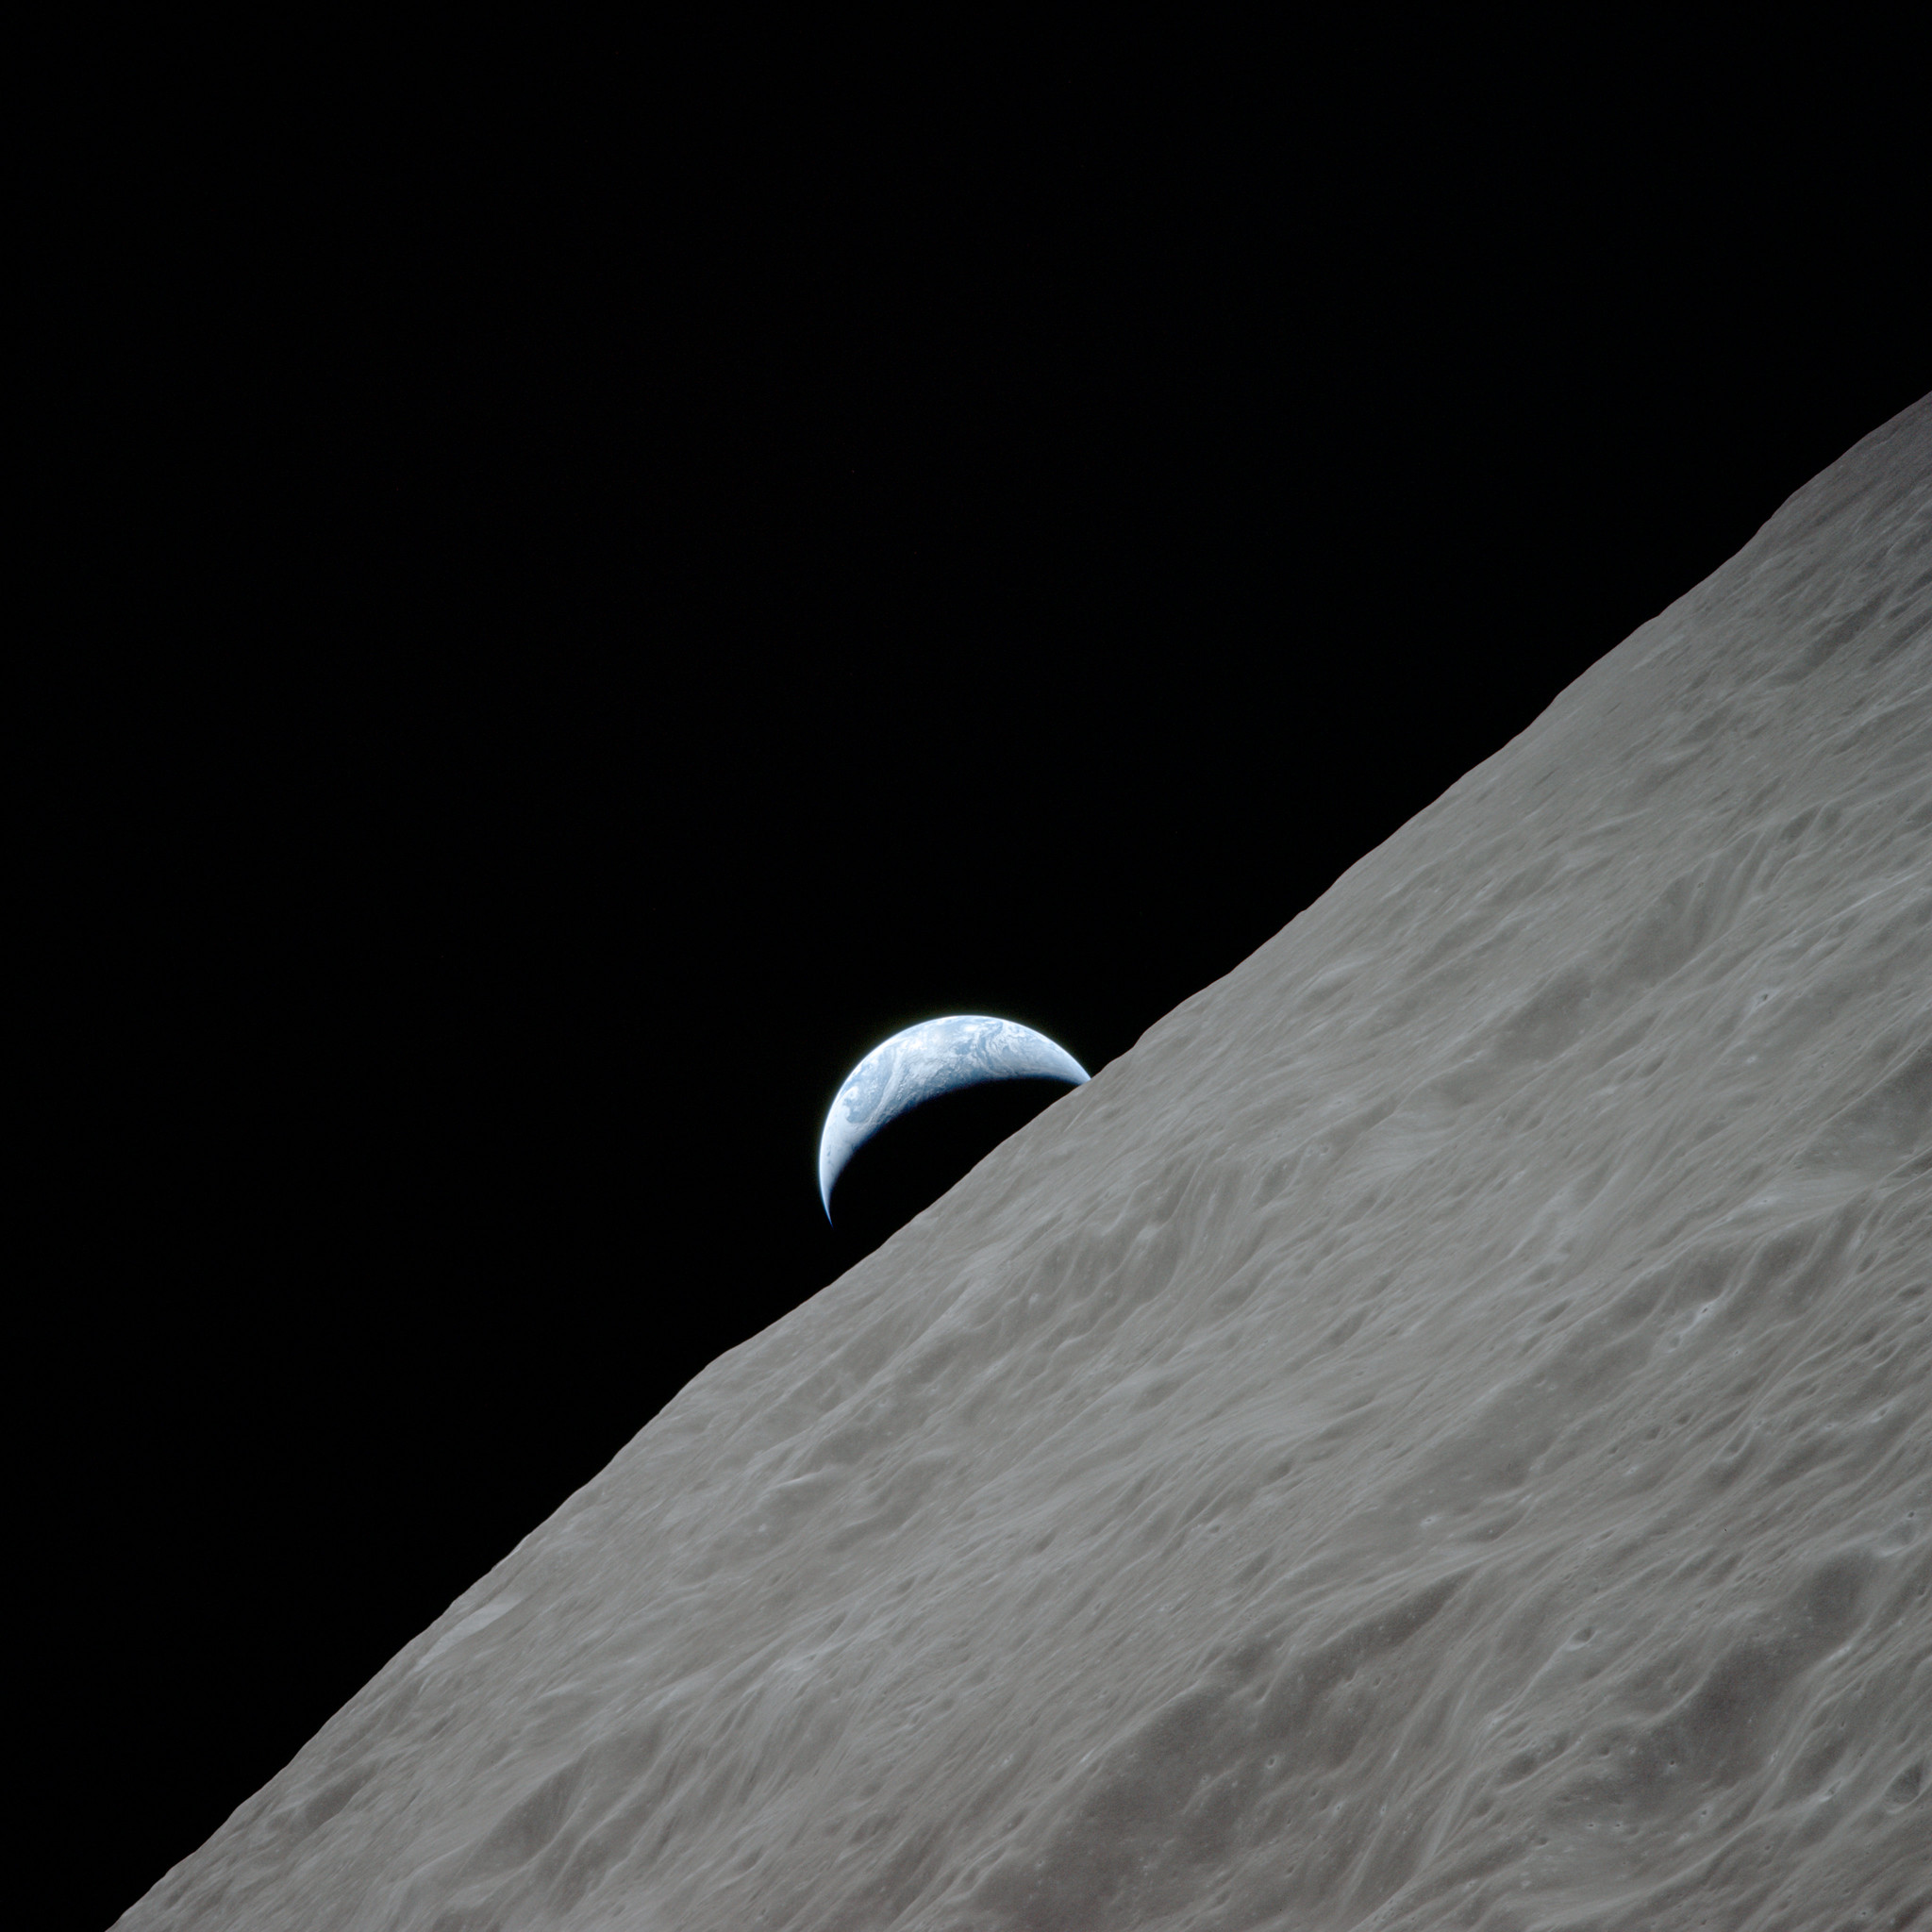 Apollo 17, Earthrise over Moon